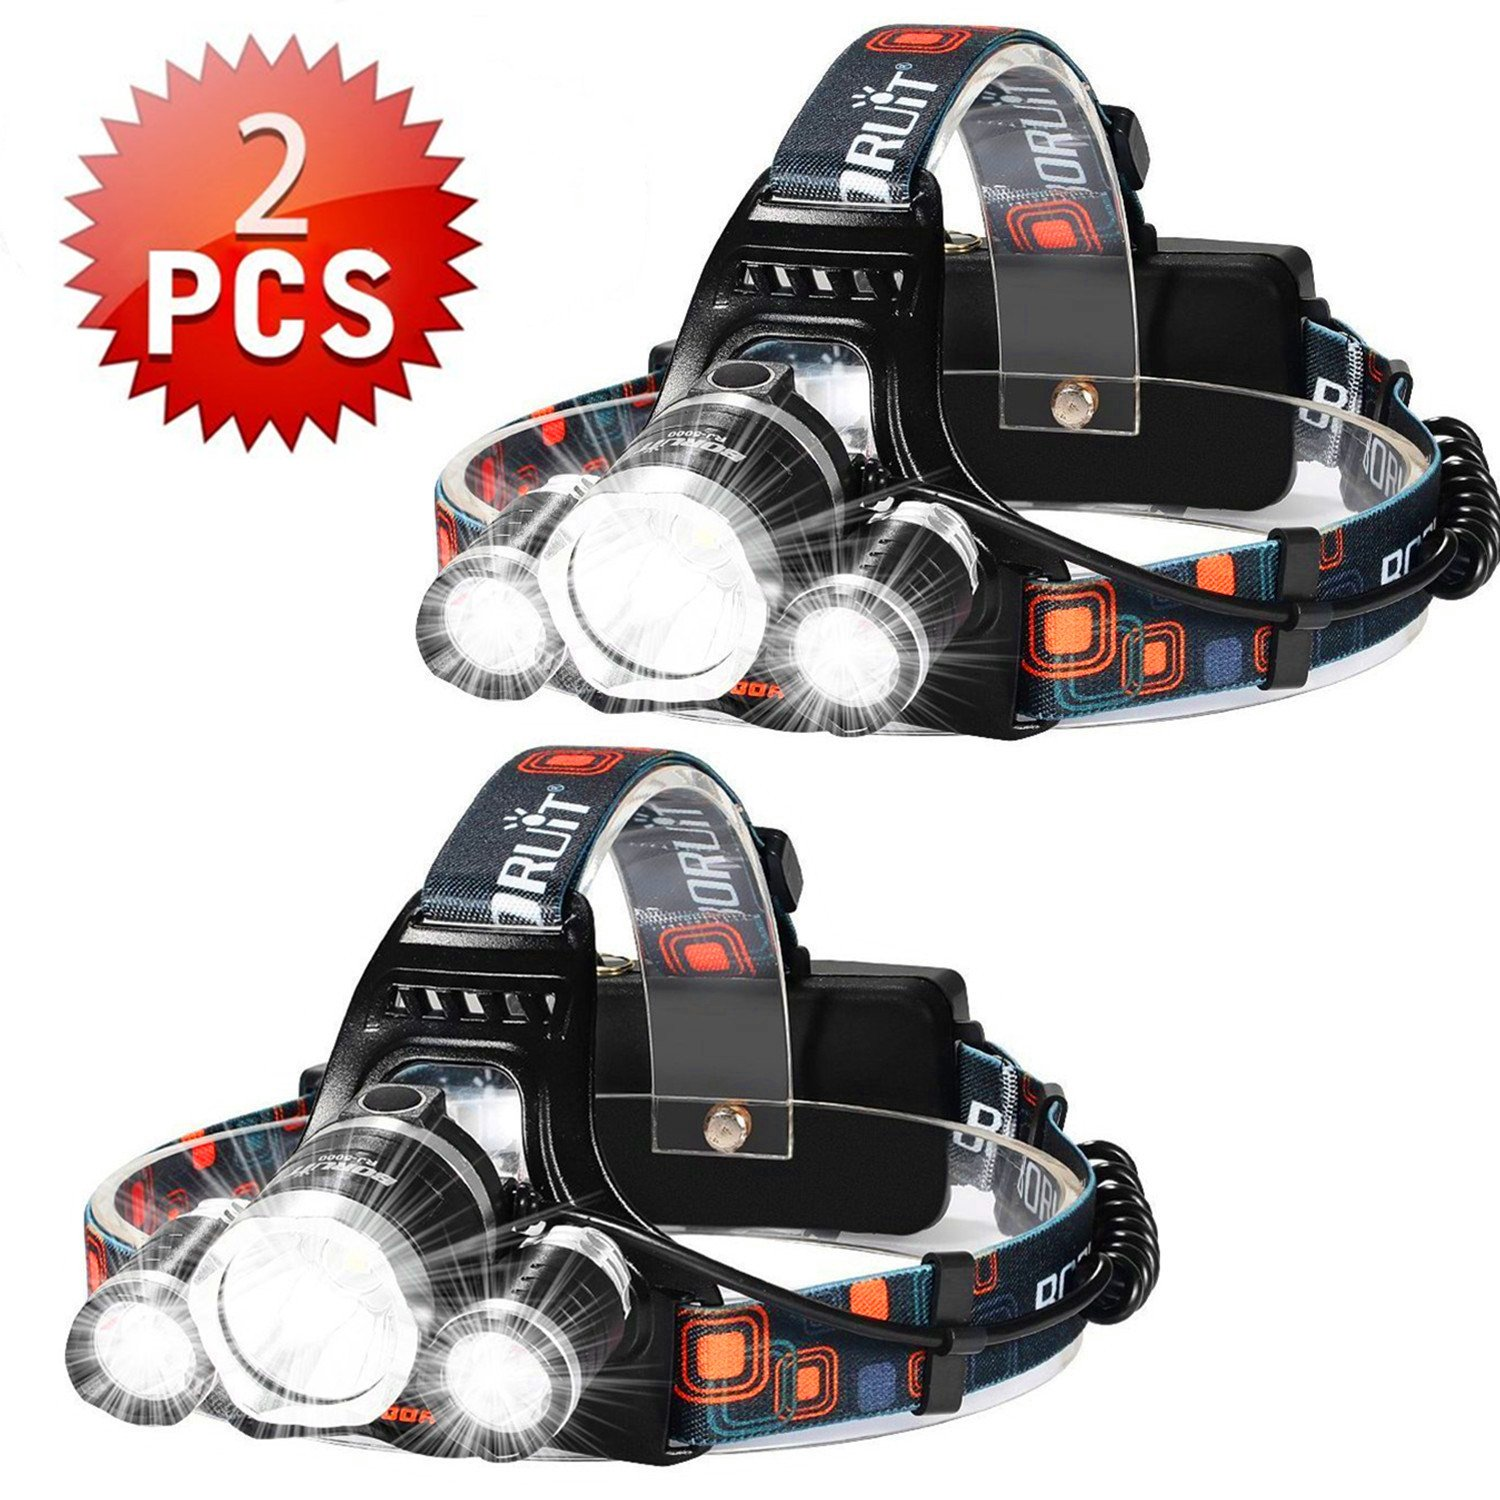 Brightest 6000 Lumen Led Headlamp Flashlight,Super Bright Fishing Head Lamp,Waterproof Hard Hat Light,Improved Led with Rechargeable Batteries for Reading Outdoor Running Camping Walking(2PCS Silver)